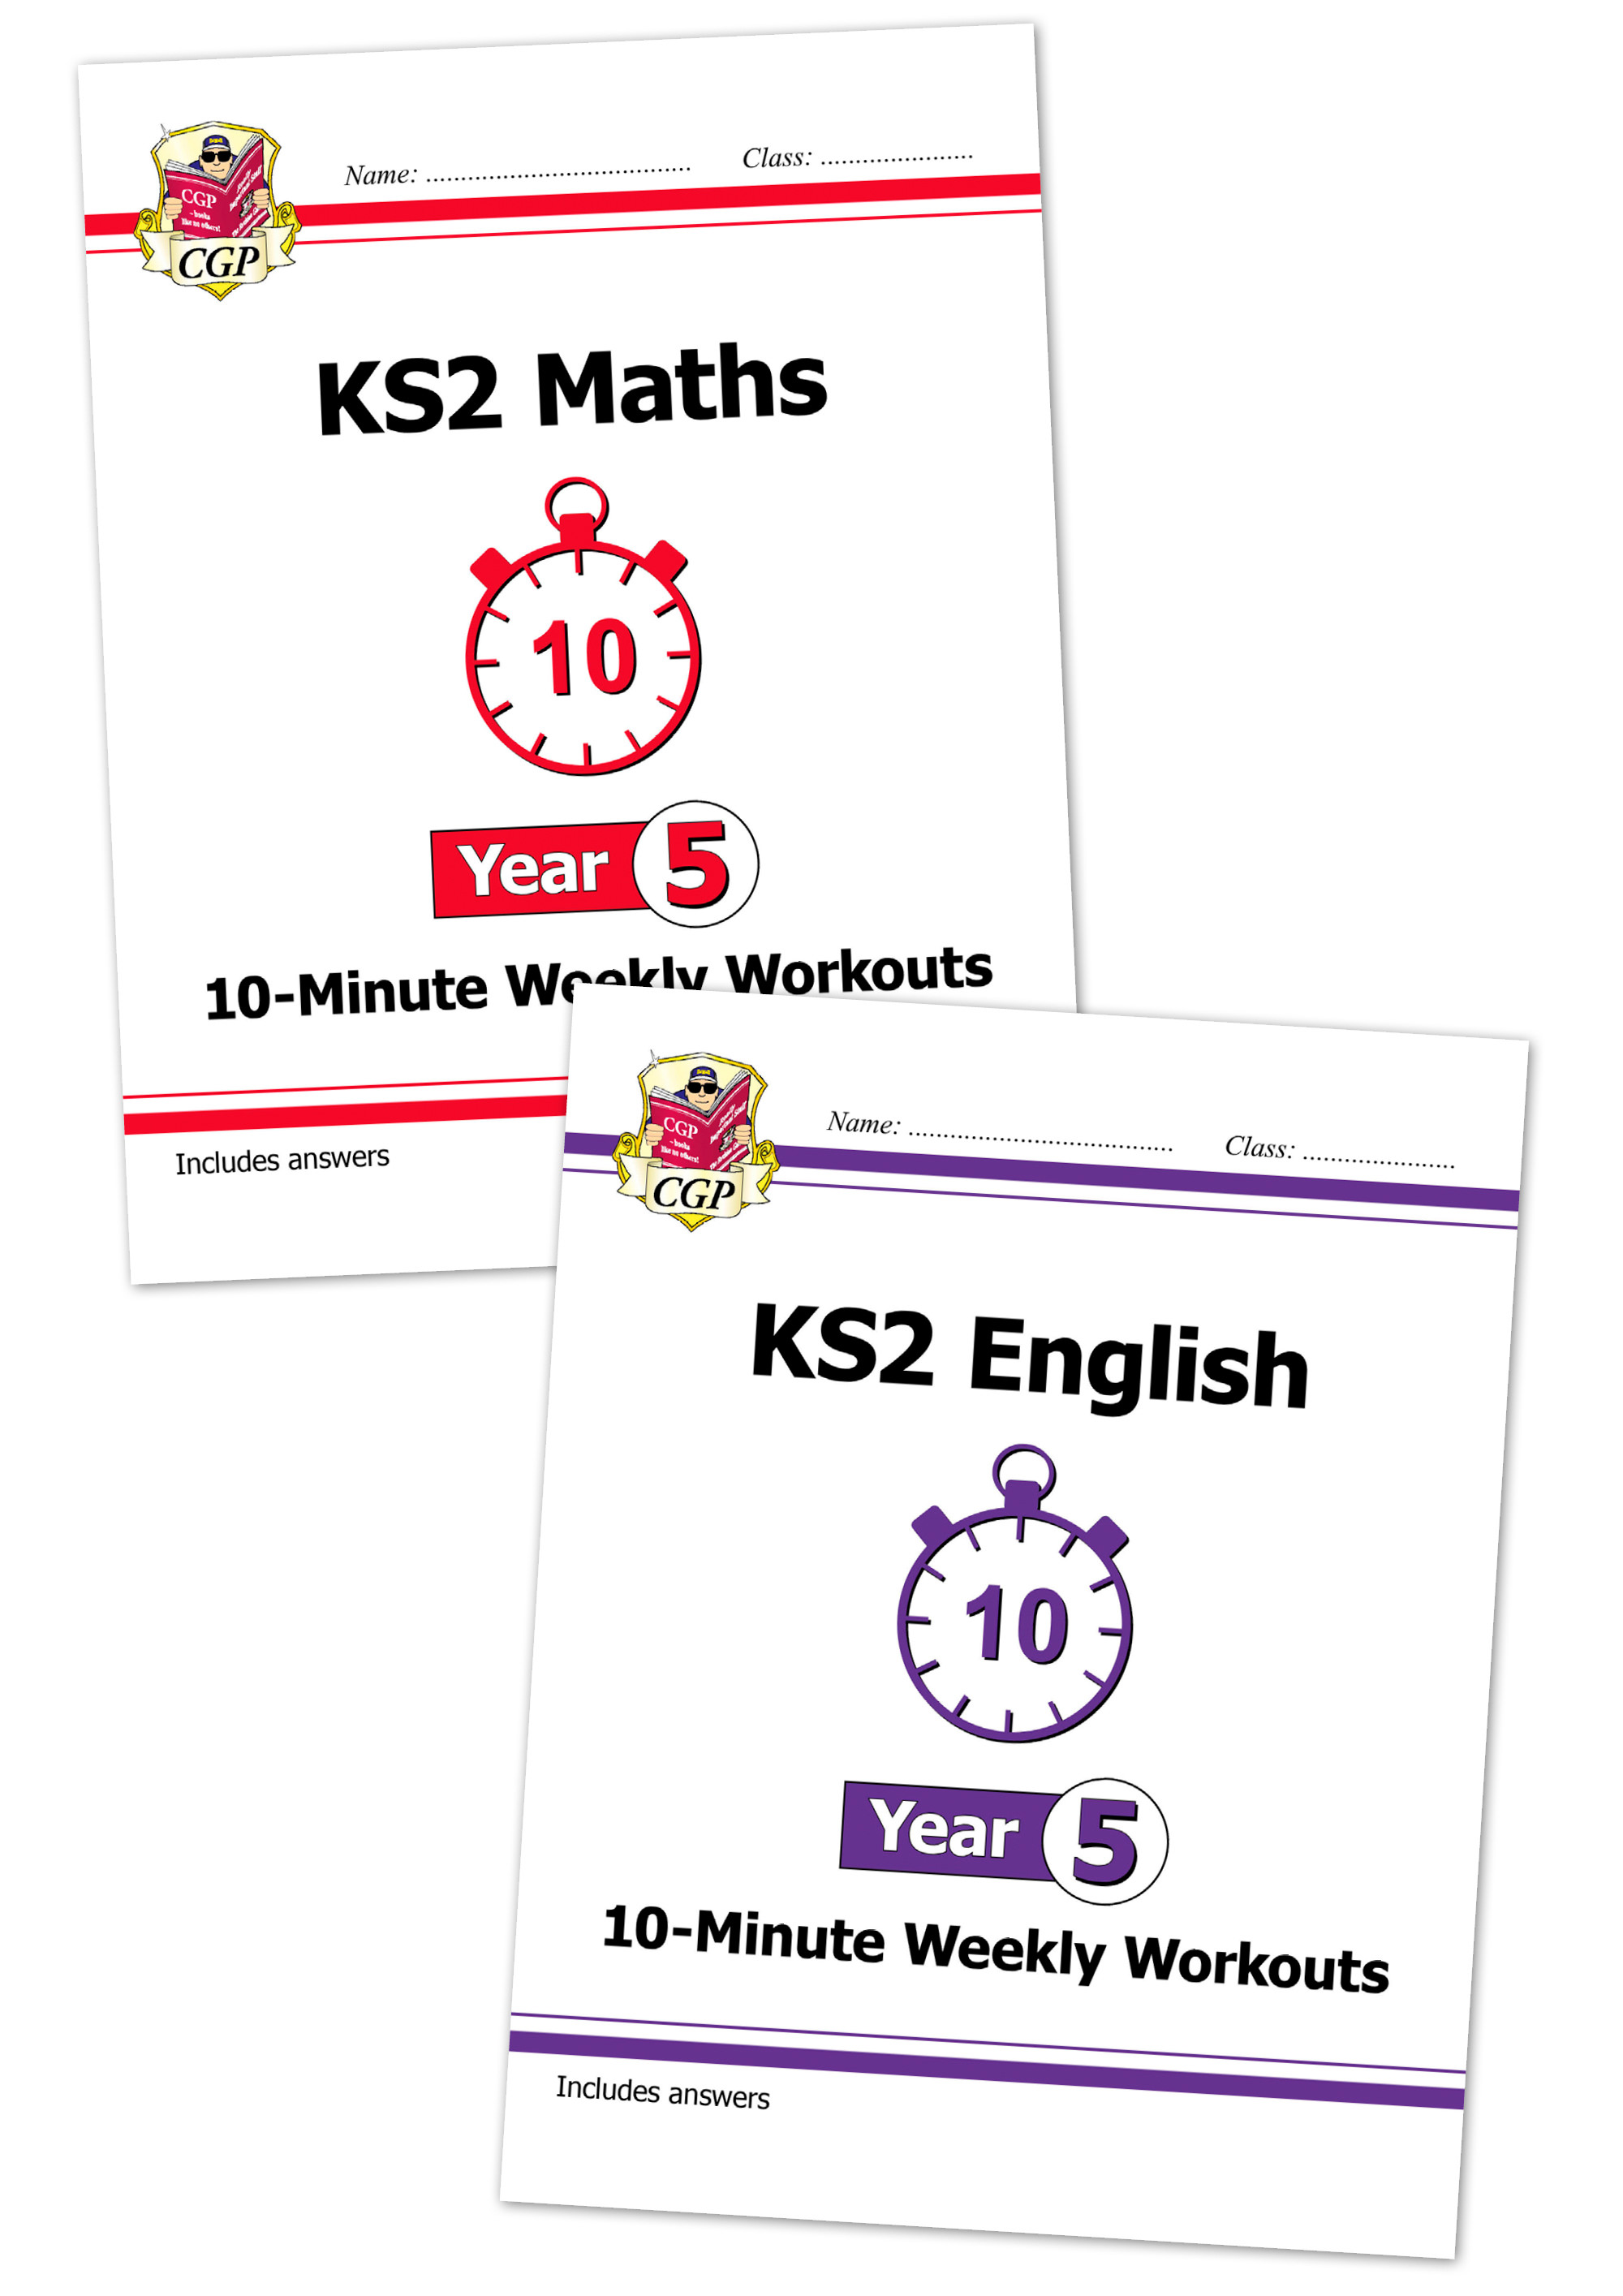 EM5XWB21 - New KS2 Maths and English 10-Minute Weekly Workouts Bundle - Year 5